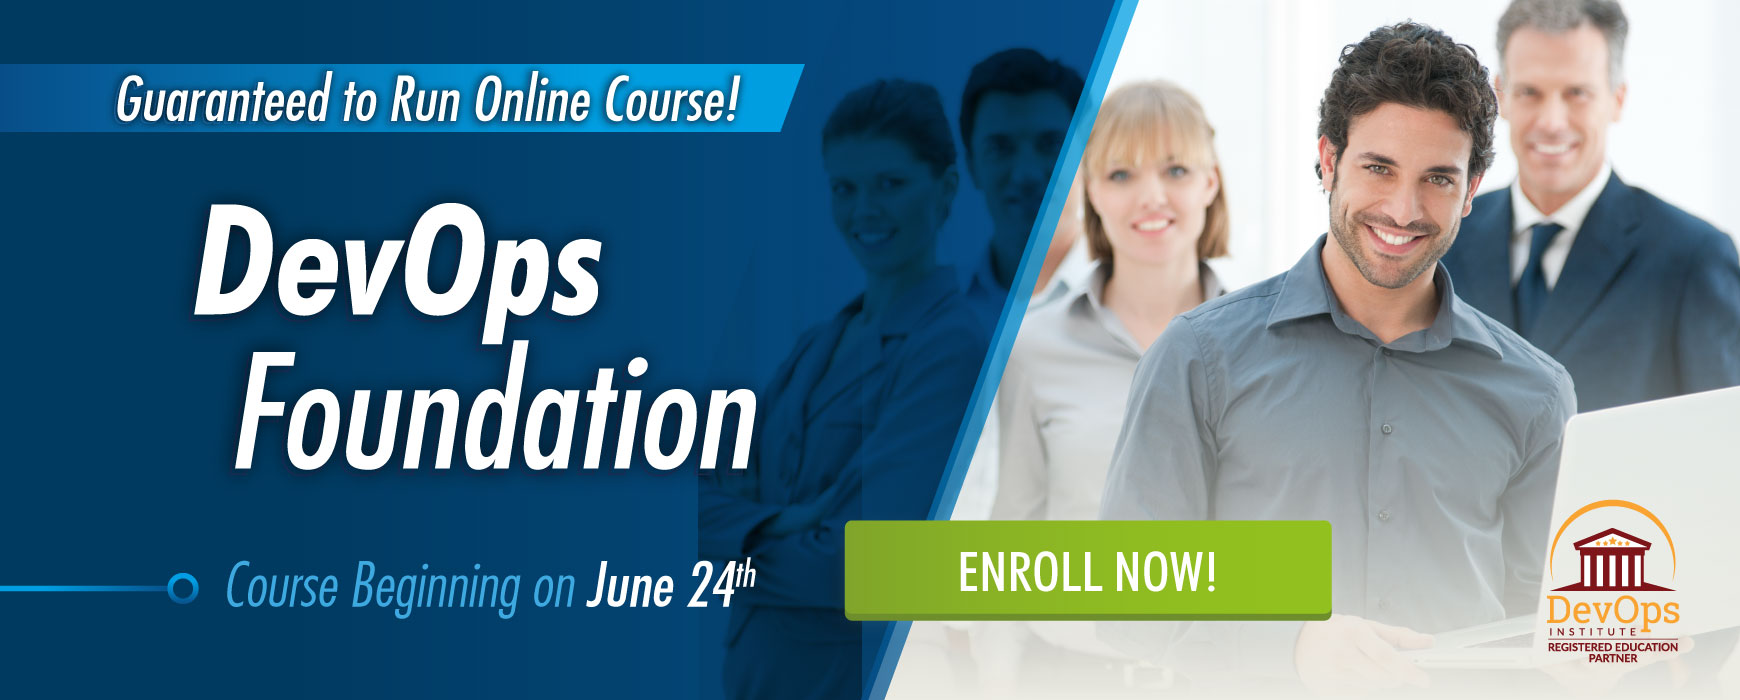 DevOps Foundation Certification Course June 24th